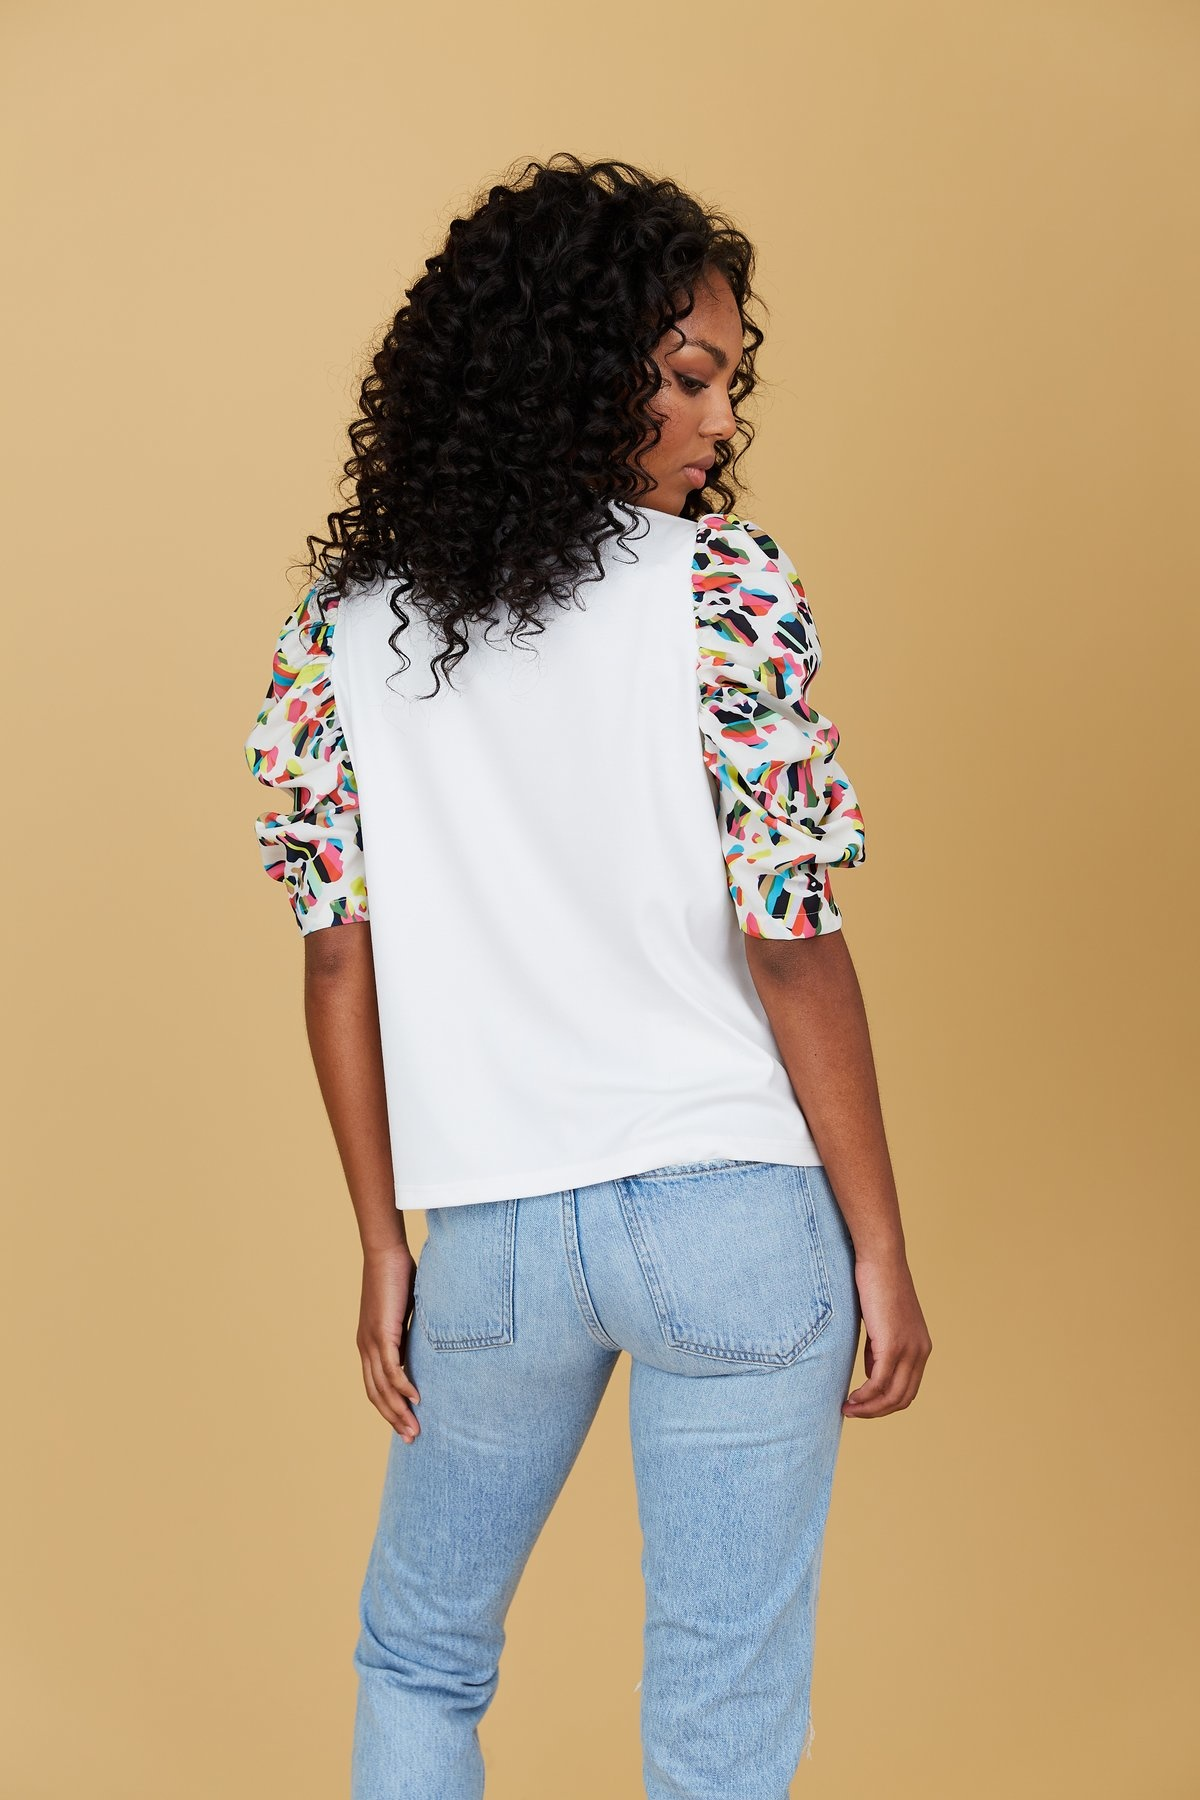 Crosby By Mollie Burch Rudy Top in White/Panthera